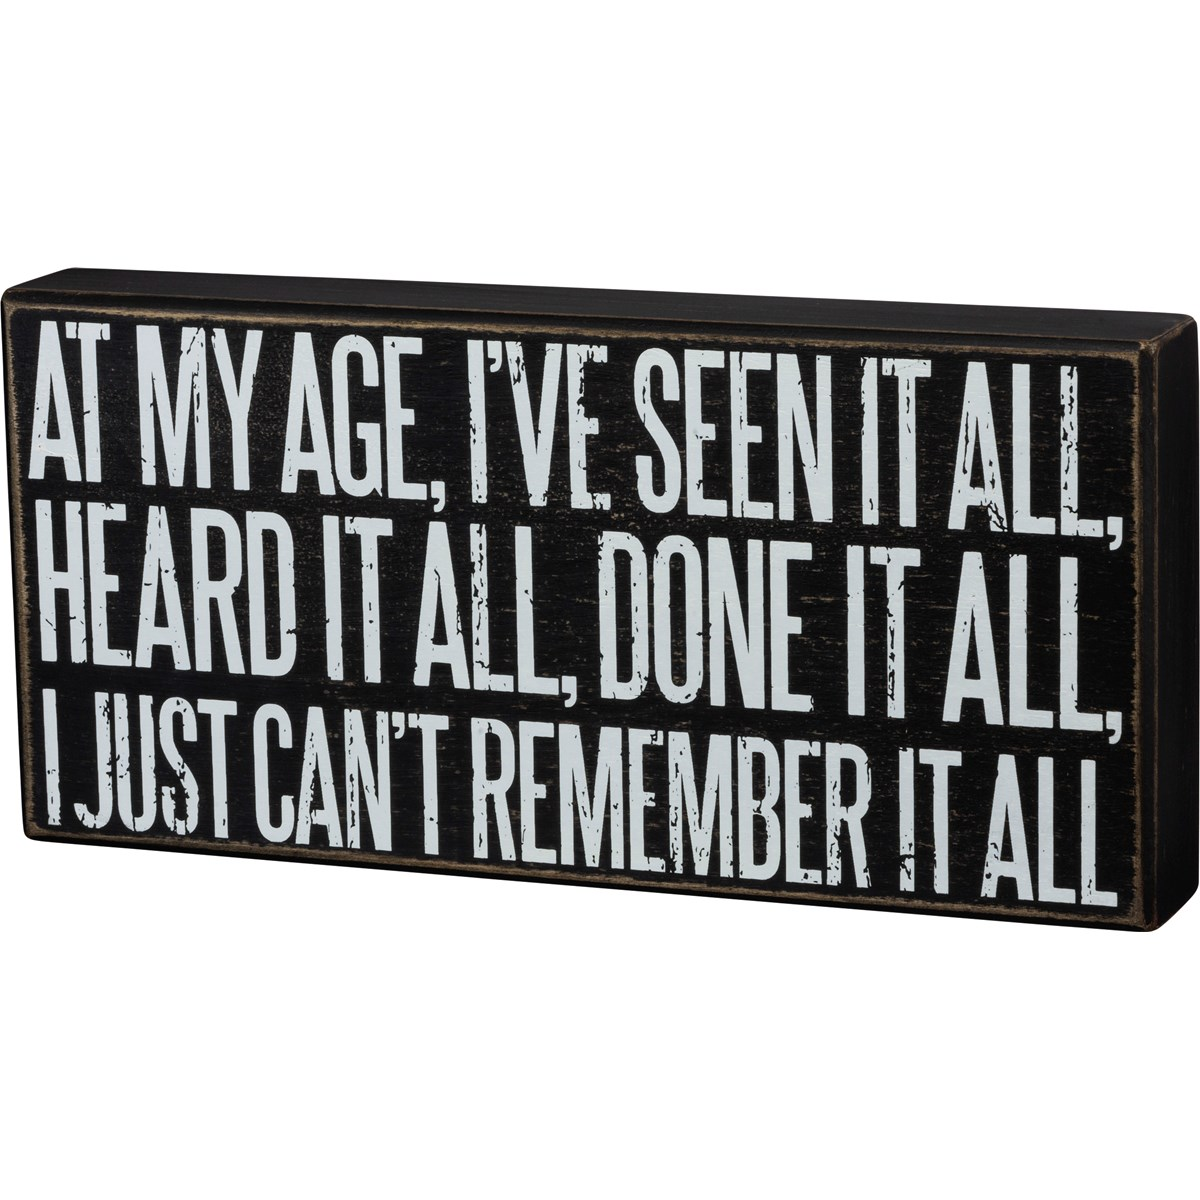 "Box Sign - At My Age I Just Can't Remember It All - 12"" x 5.75"" x 1.75"" - Wood"